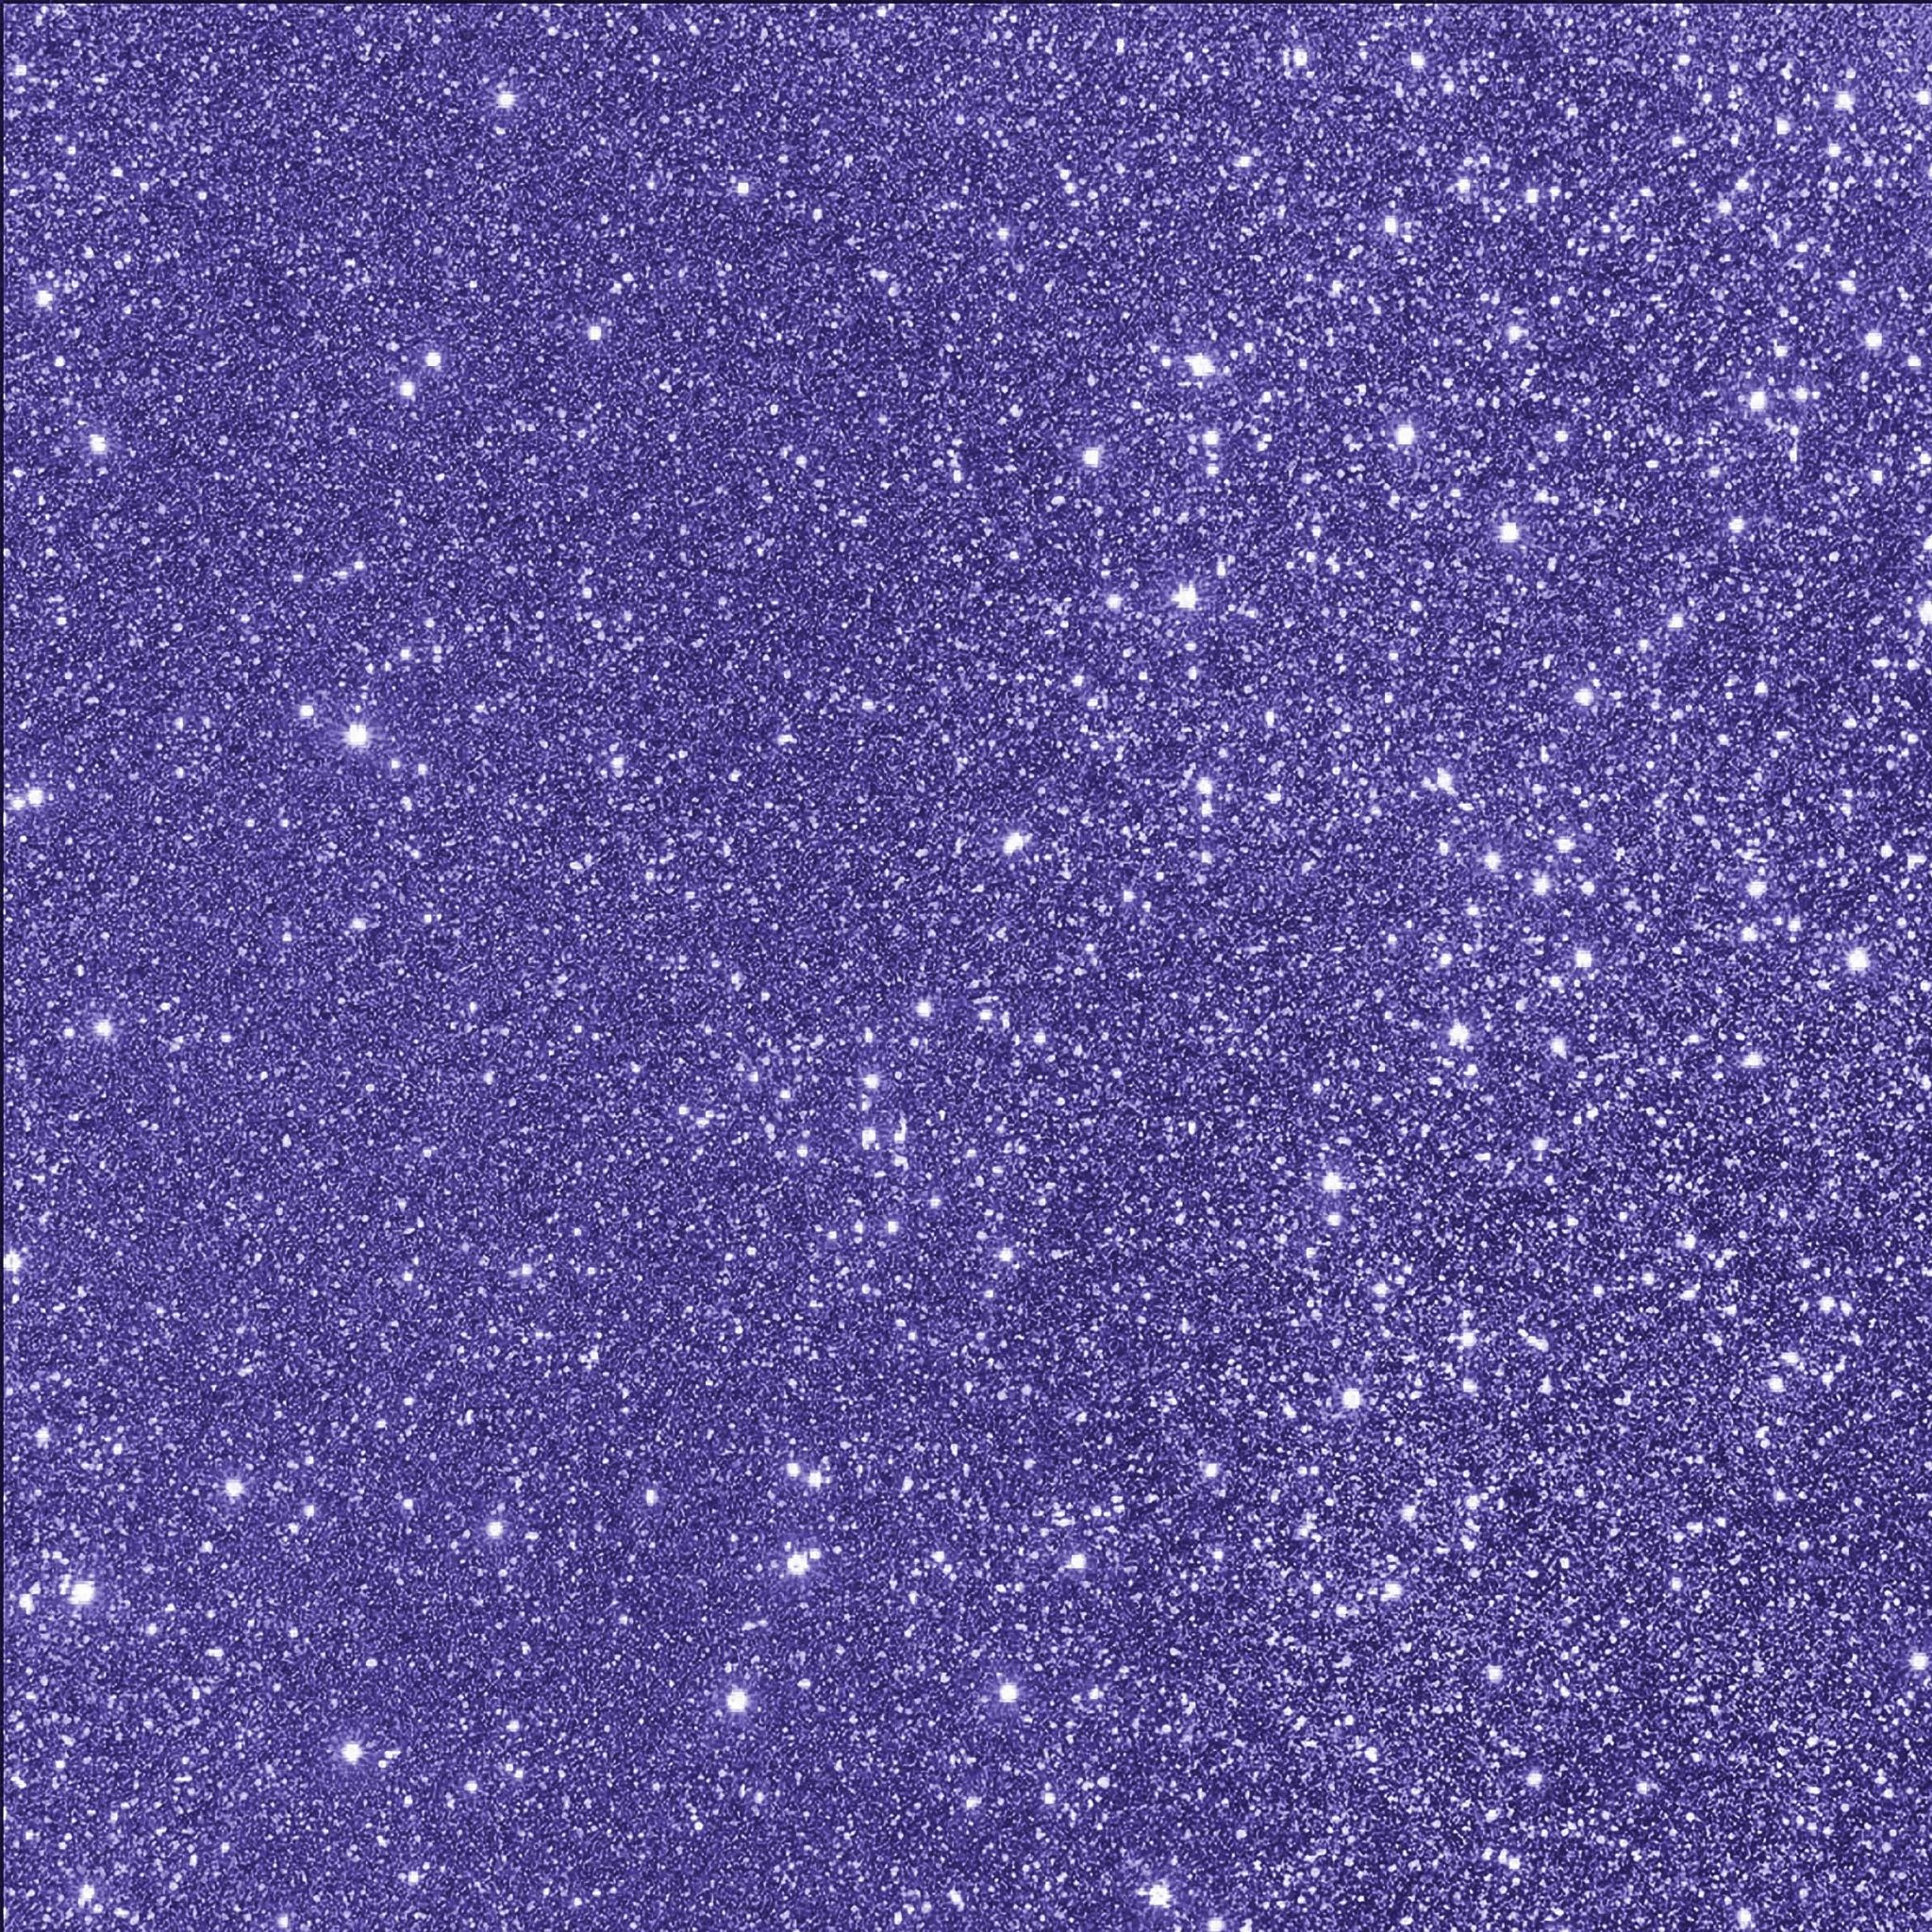 Res: 2048x2048, Purple Glitter wallpapers 2048 x 2048 Wallpapers available for free  download.